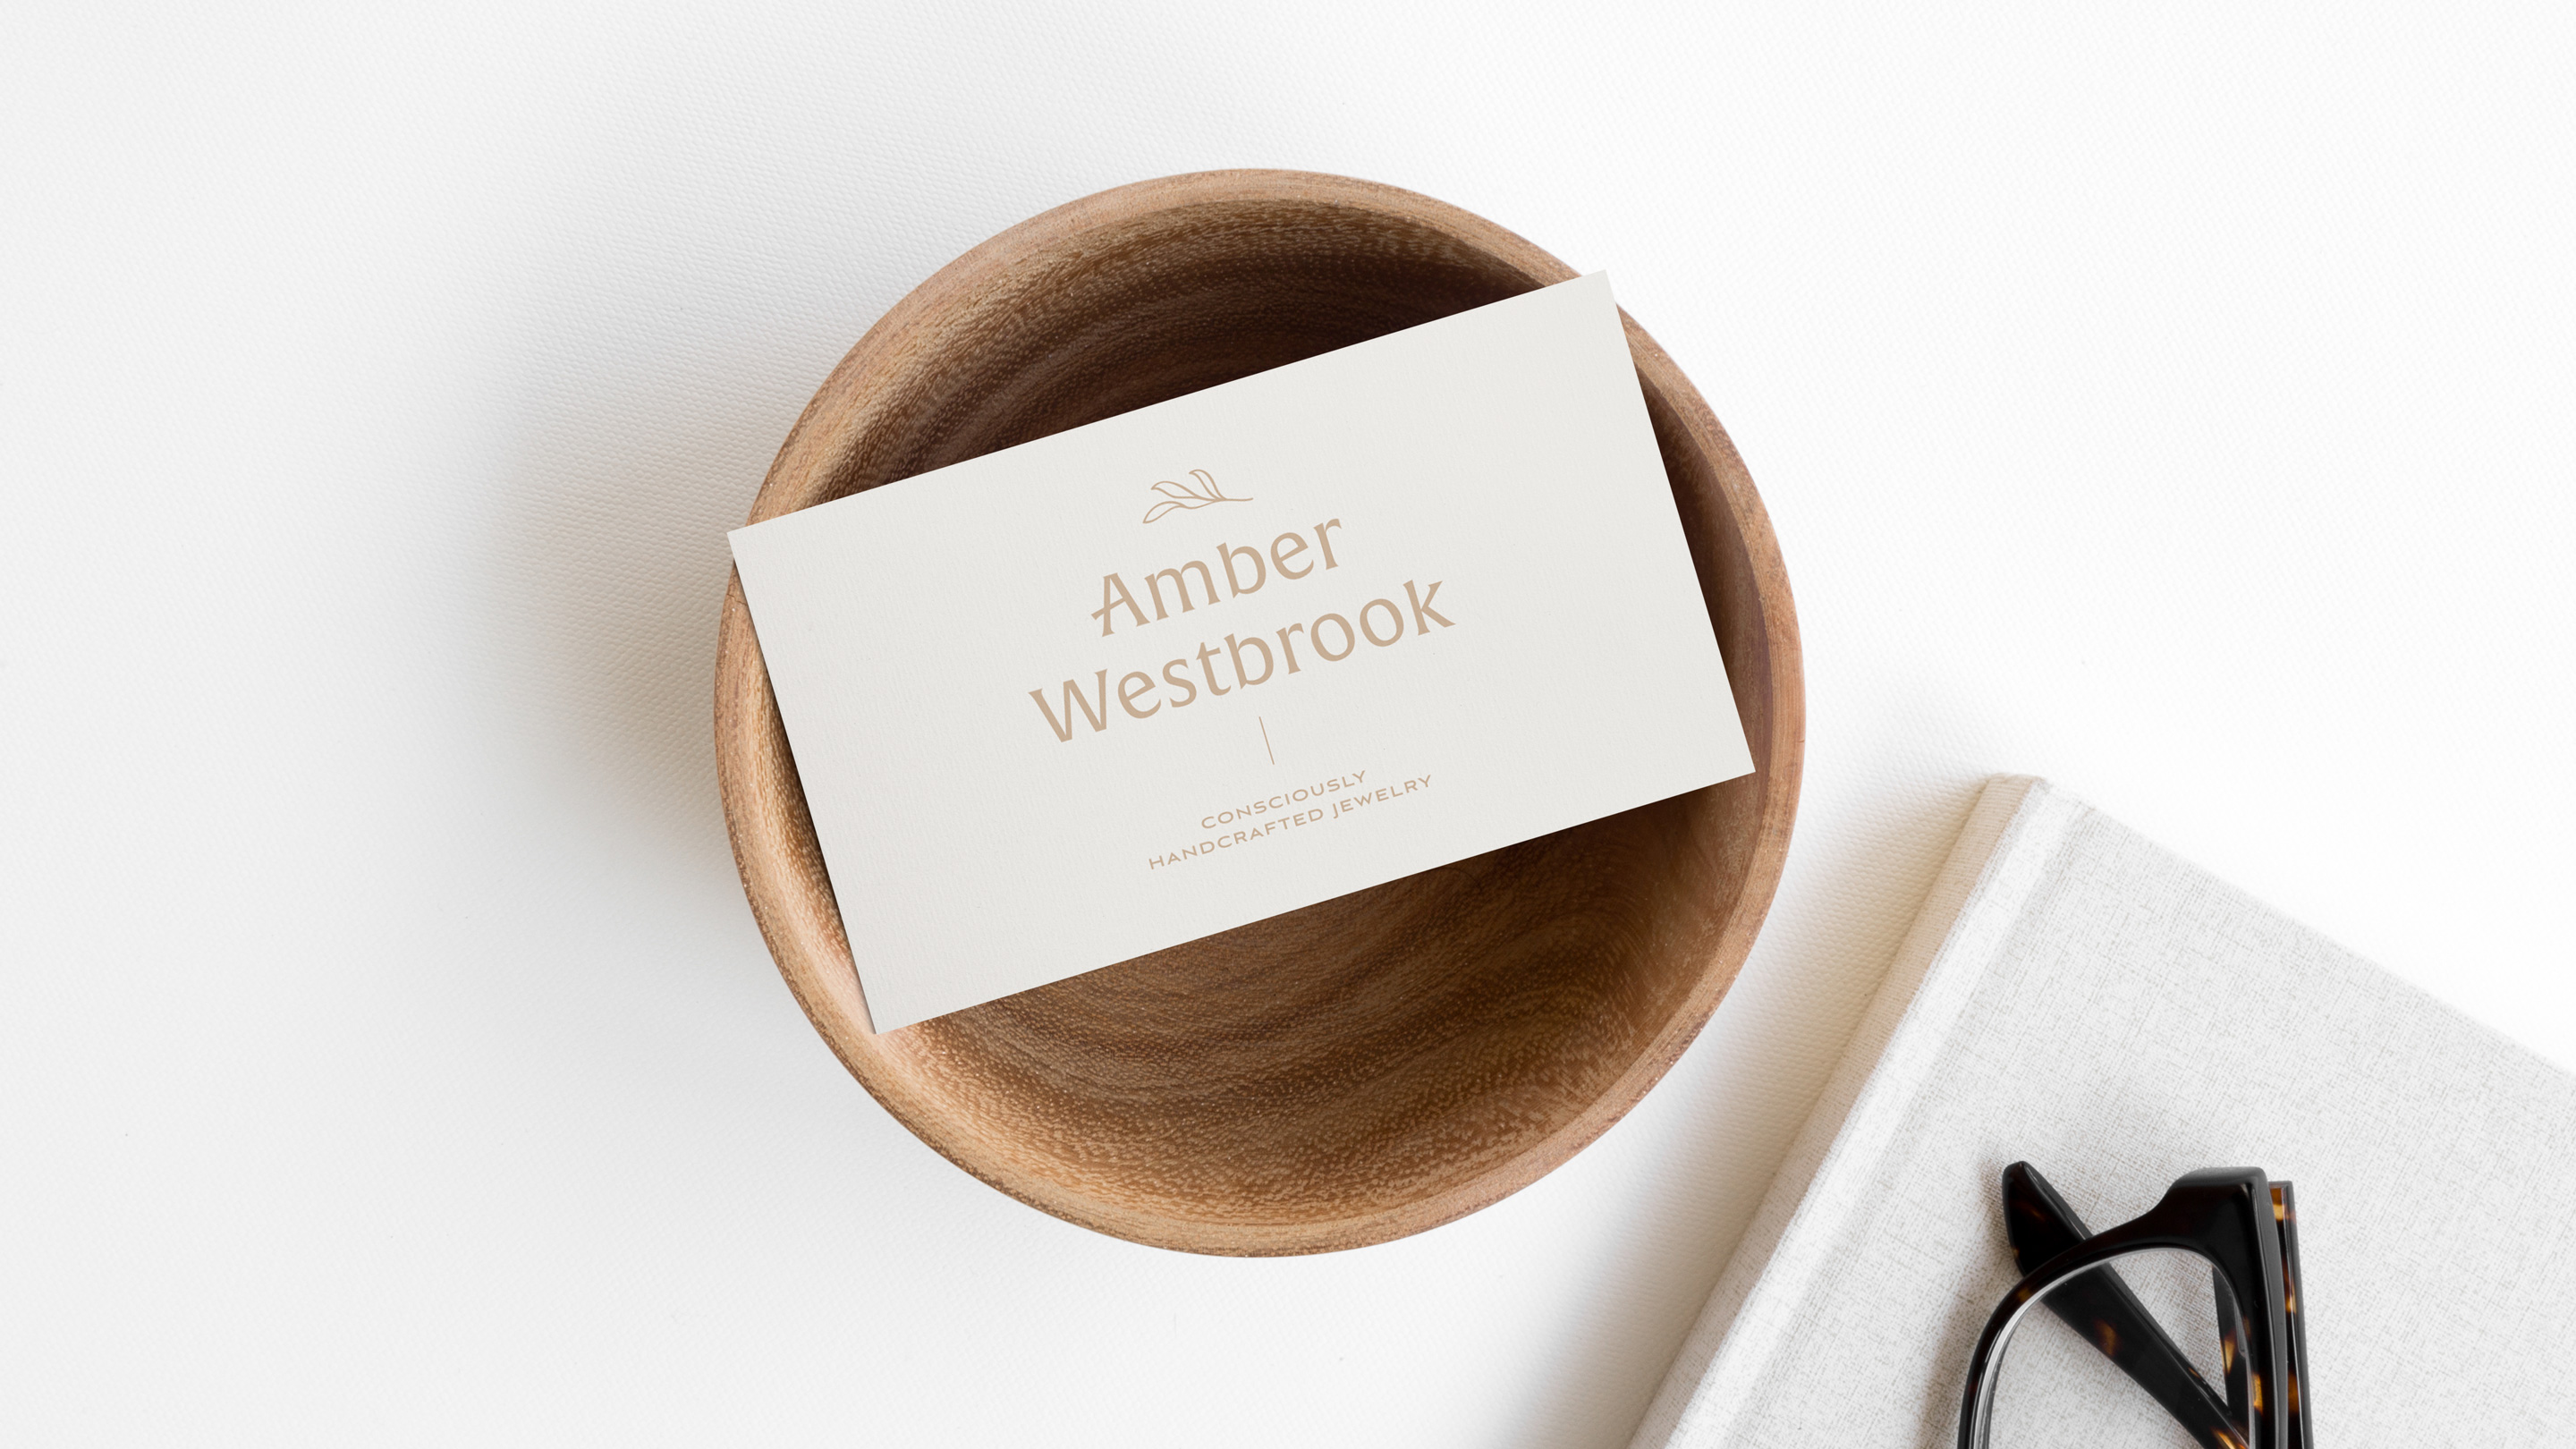 Amber Westbrok - Consciously Handcrafted Jewelry   Conscious and ethical handmade jewelry brand design   Éternel Design Studio